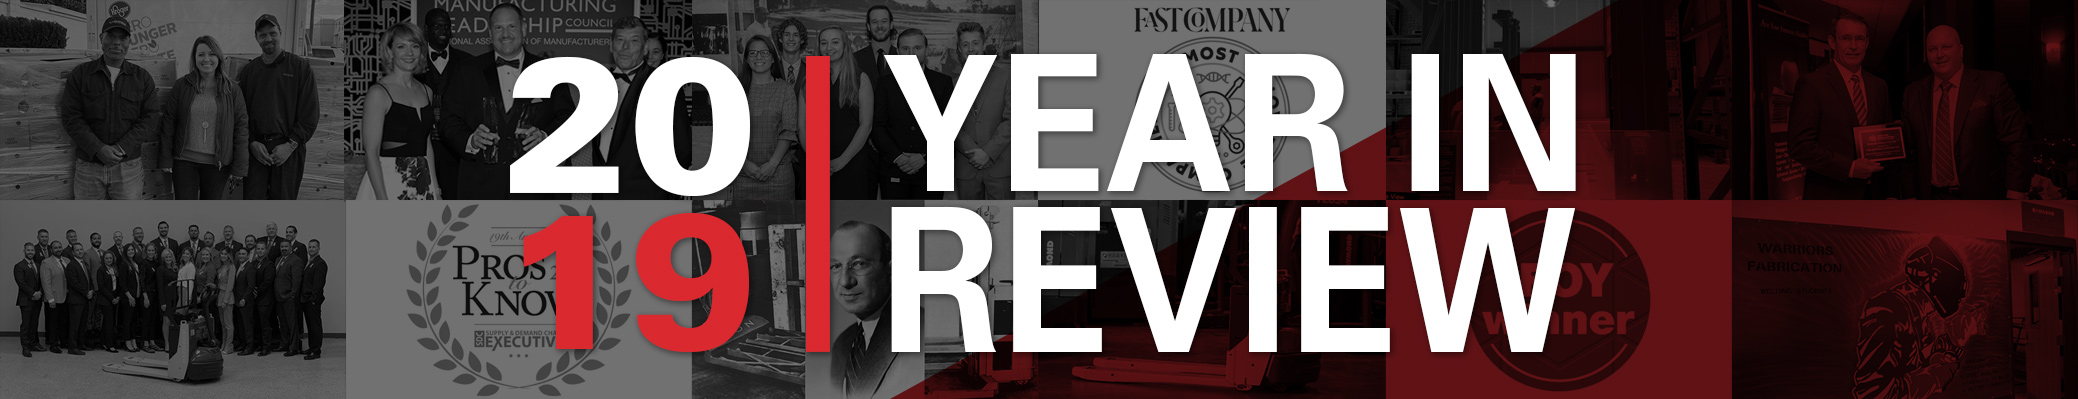 year in review, raymond news